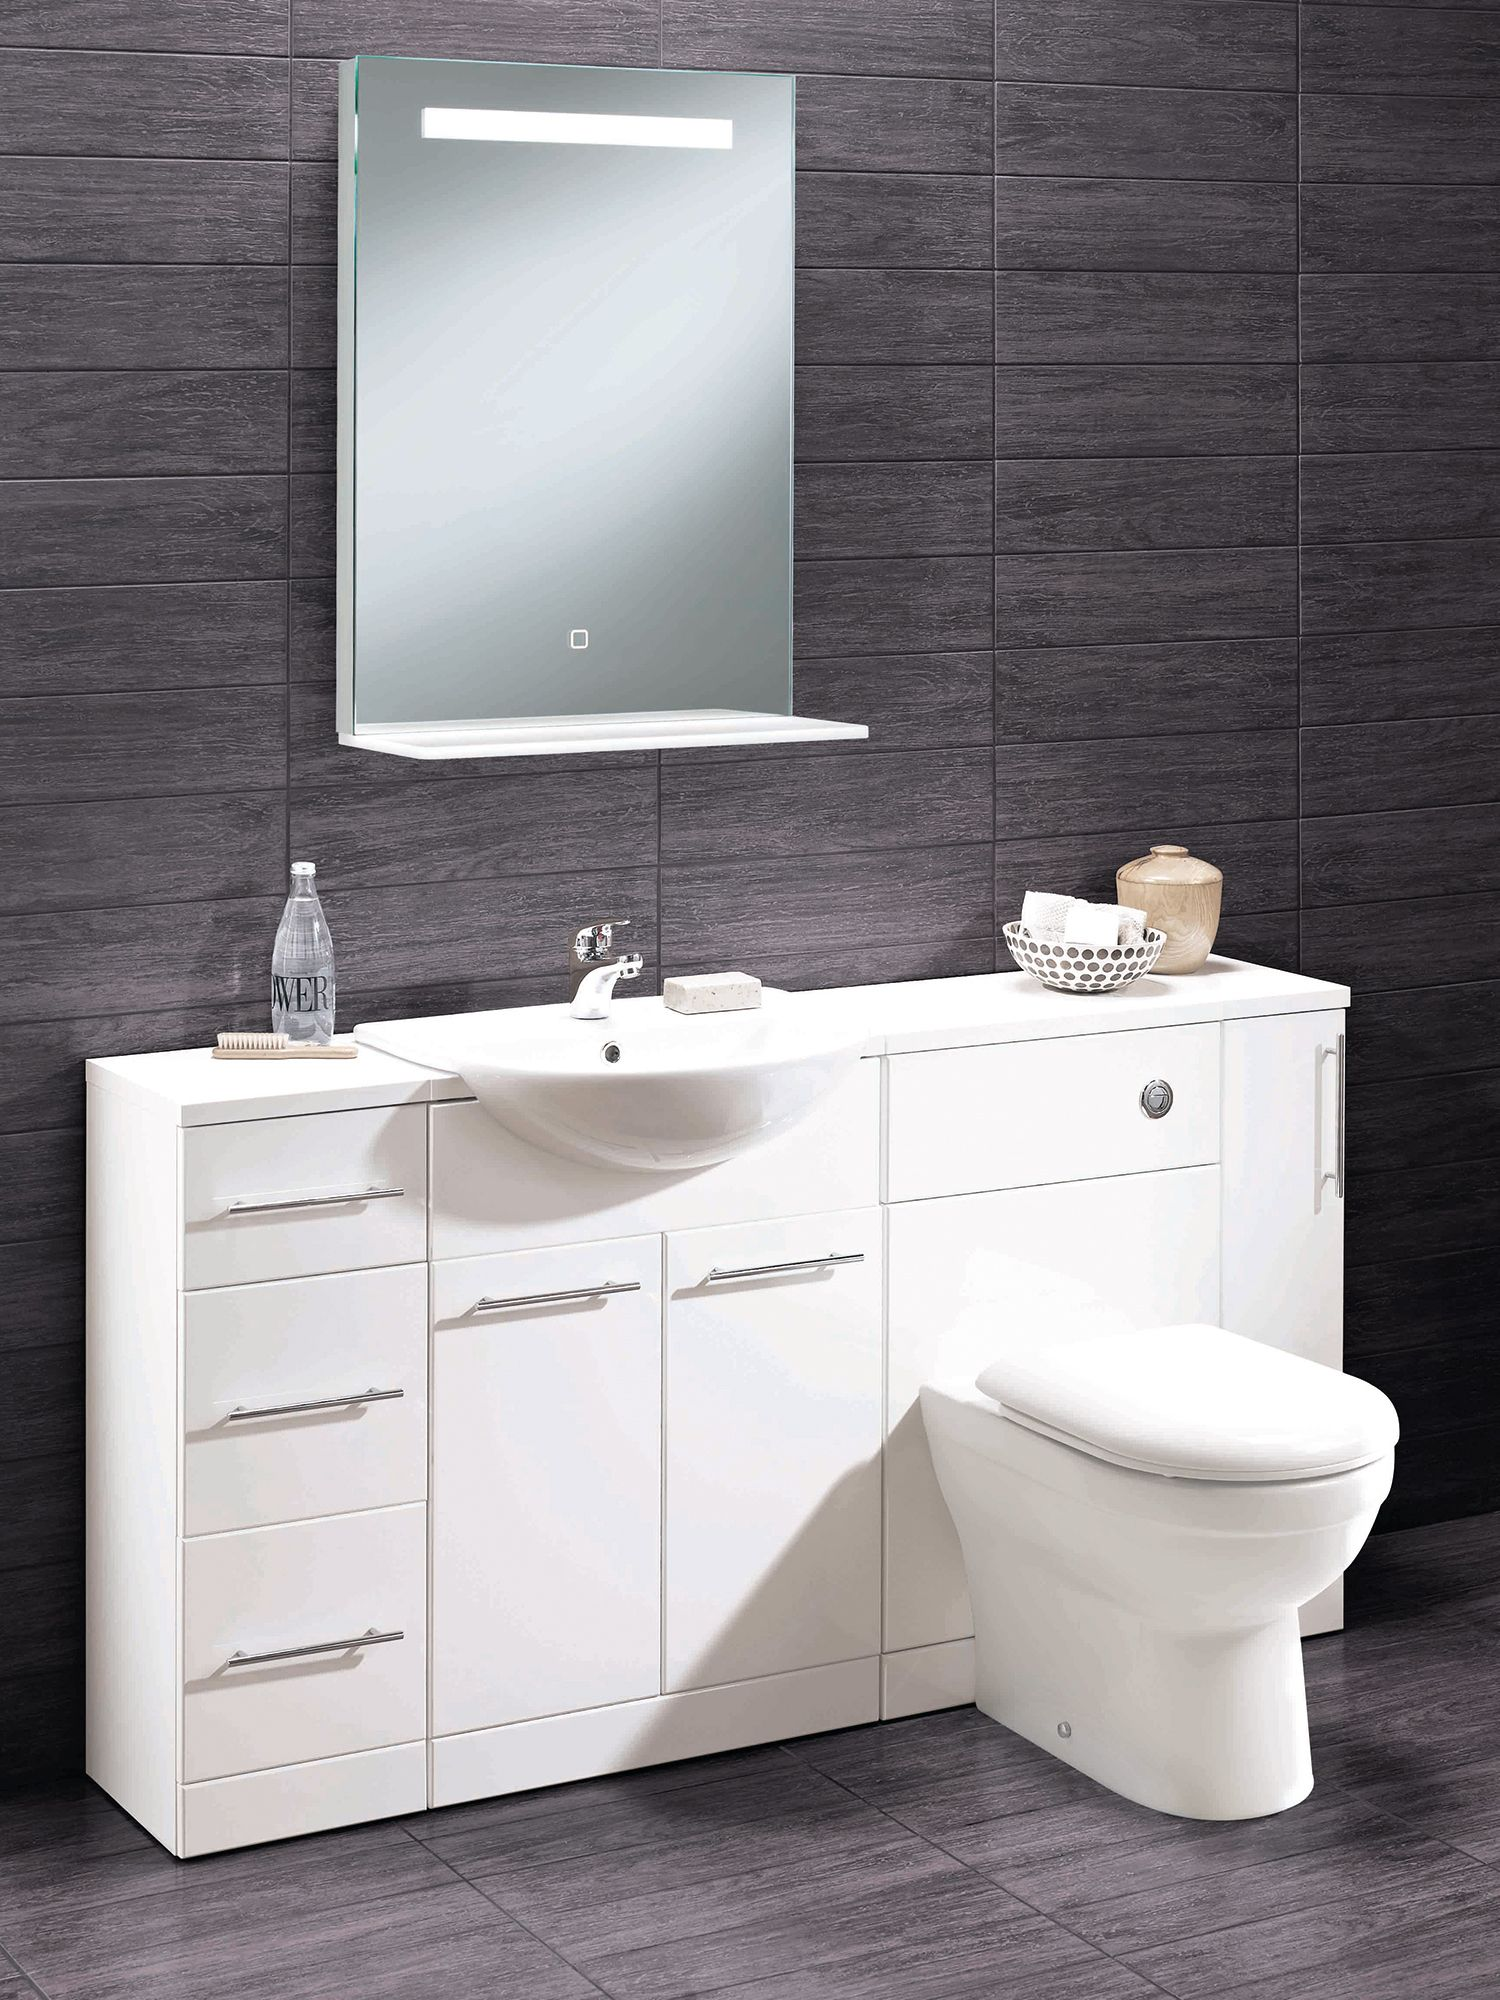 Our Skara Back To Wall Bathroom Furniture From Highlife Bathrooms Is Now On Display In Our Bootle Sho Bathroom Furniture Beautiful Bathrooms Bathroom